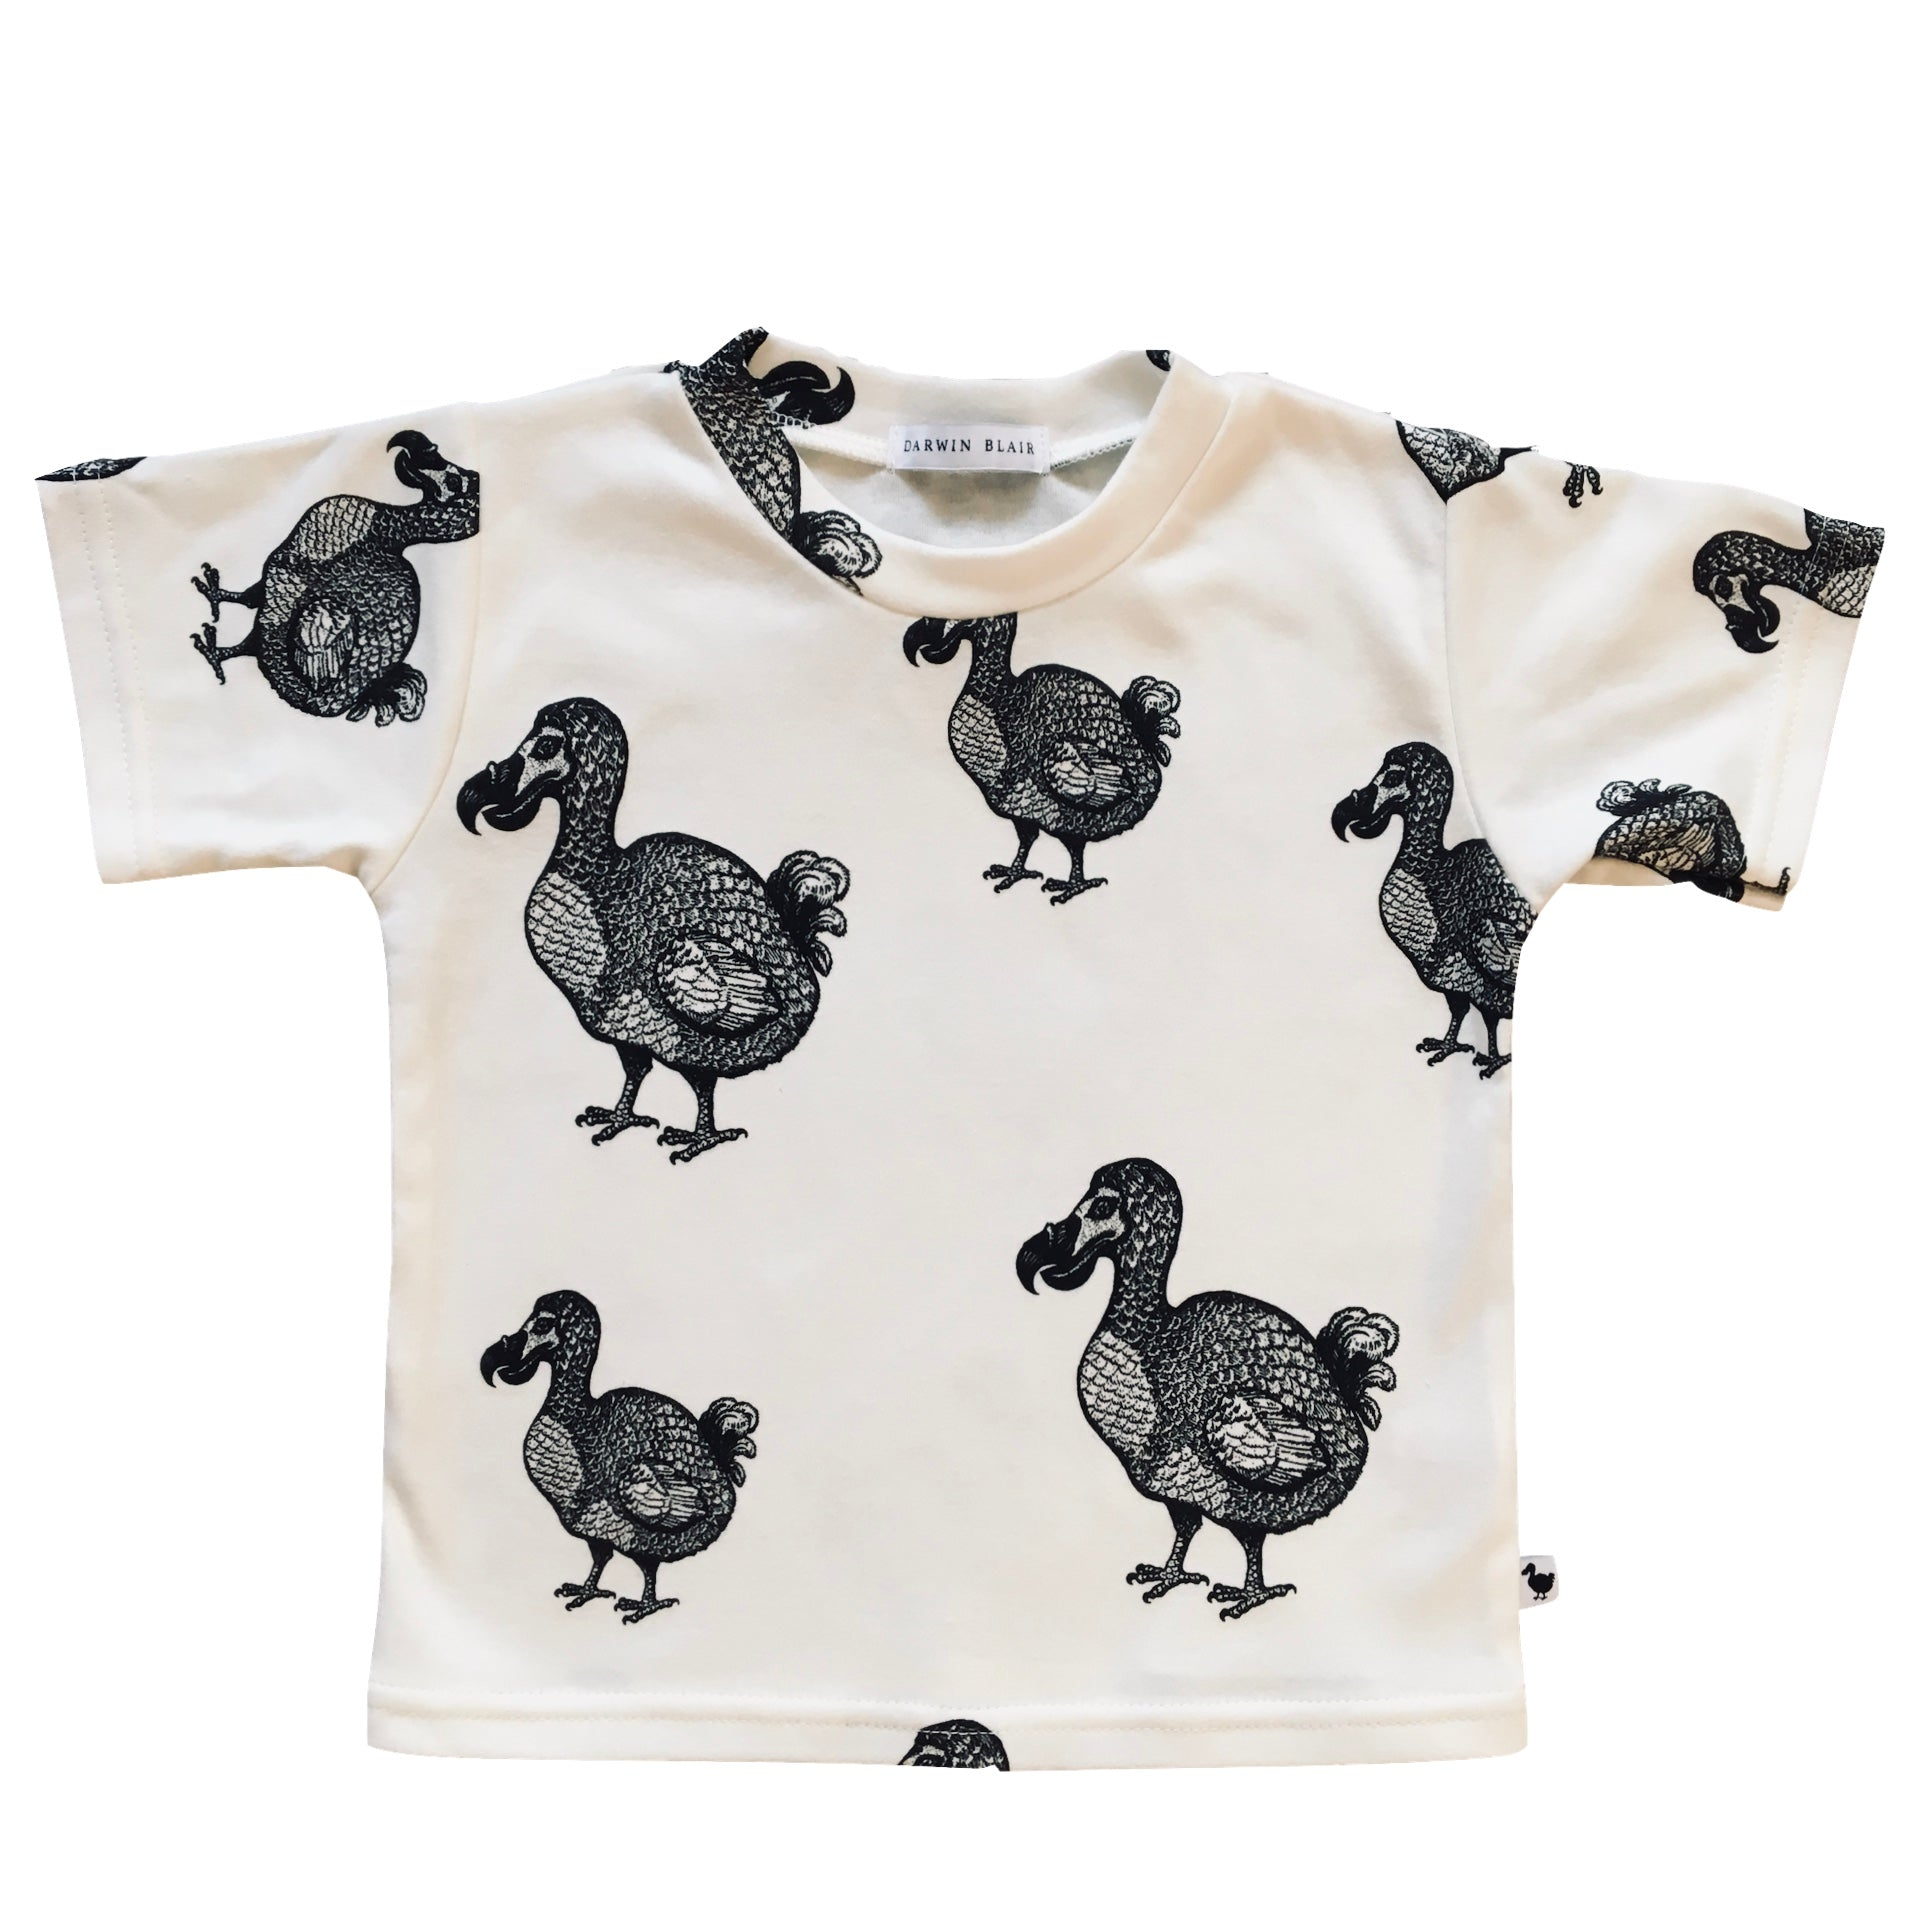 Dodo short sleeve t-shirt